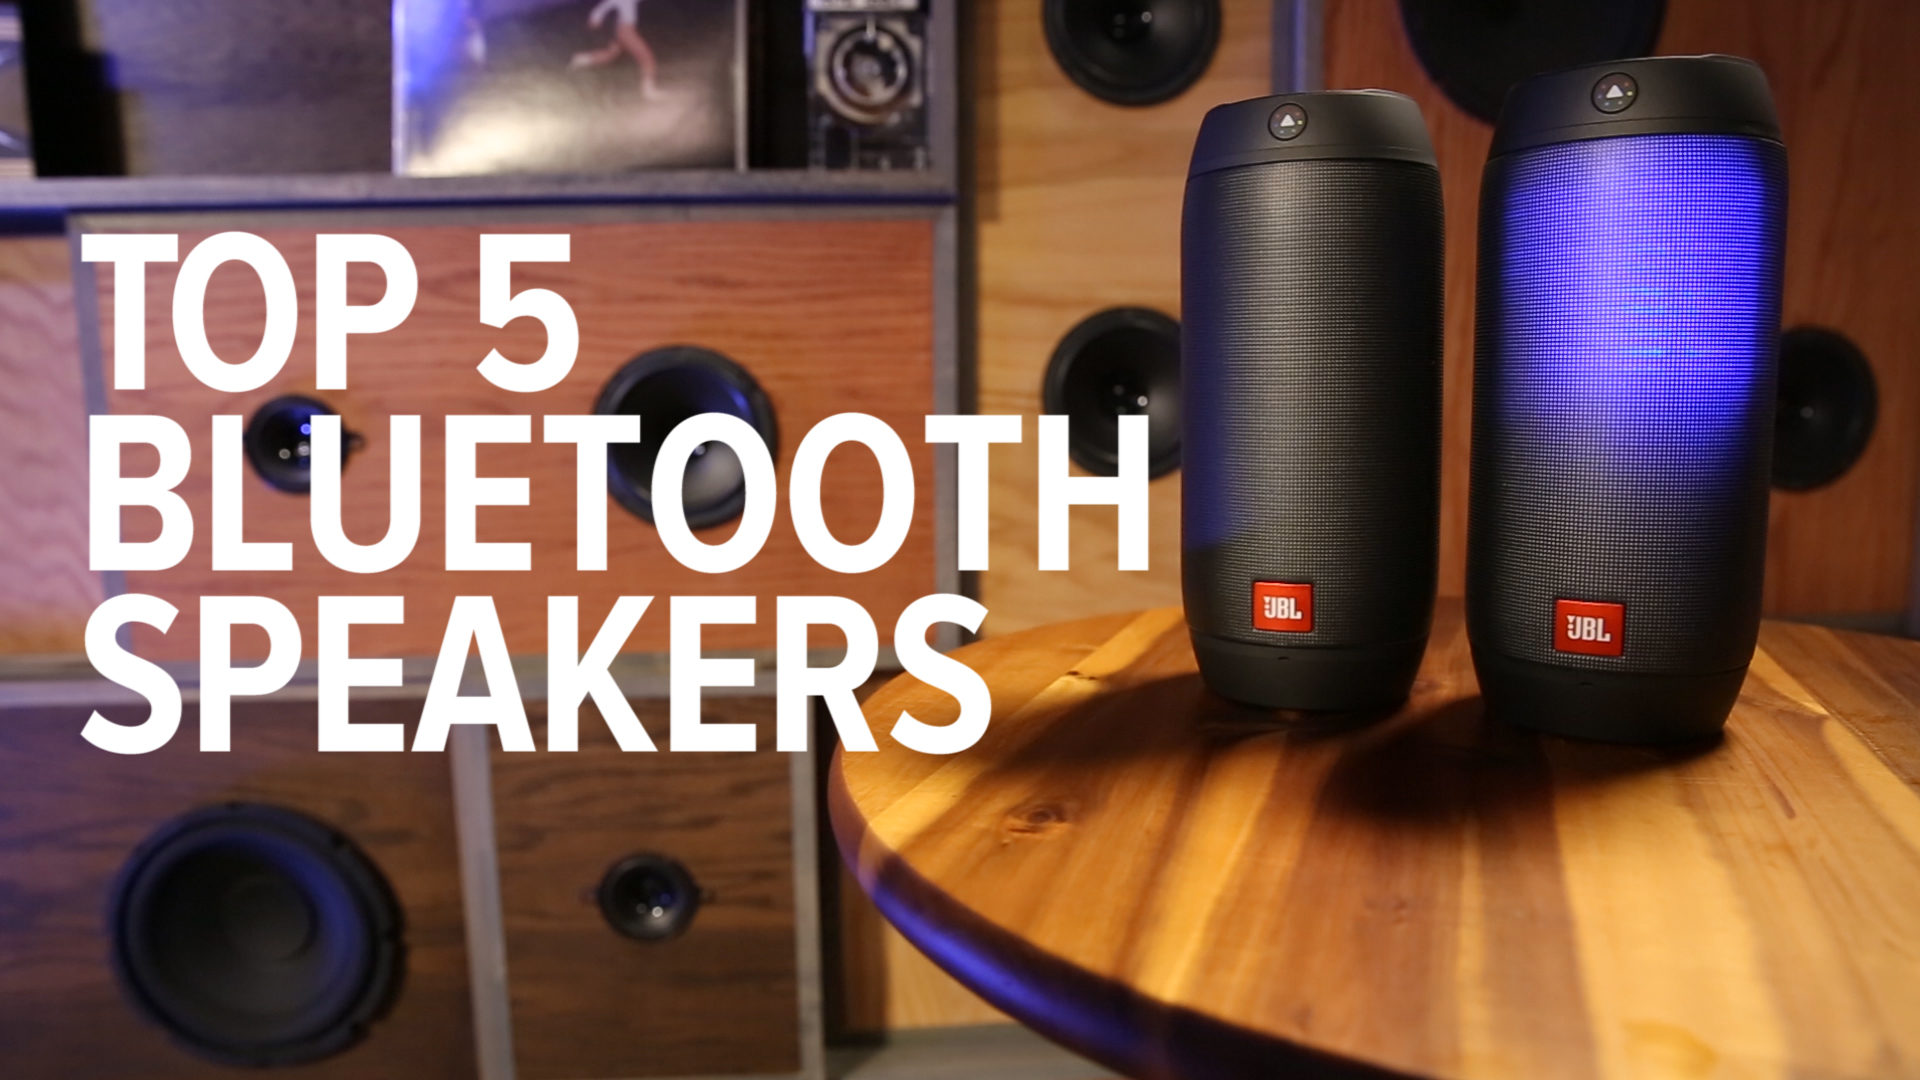 Video: Top 5 Bluetooth speakers you can buy